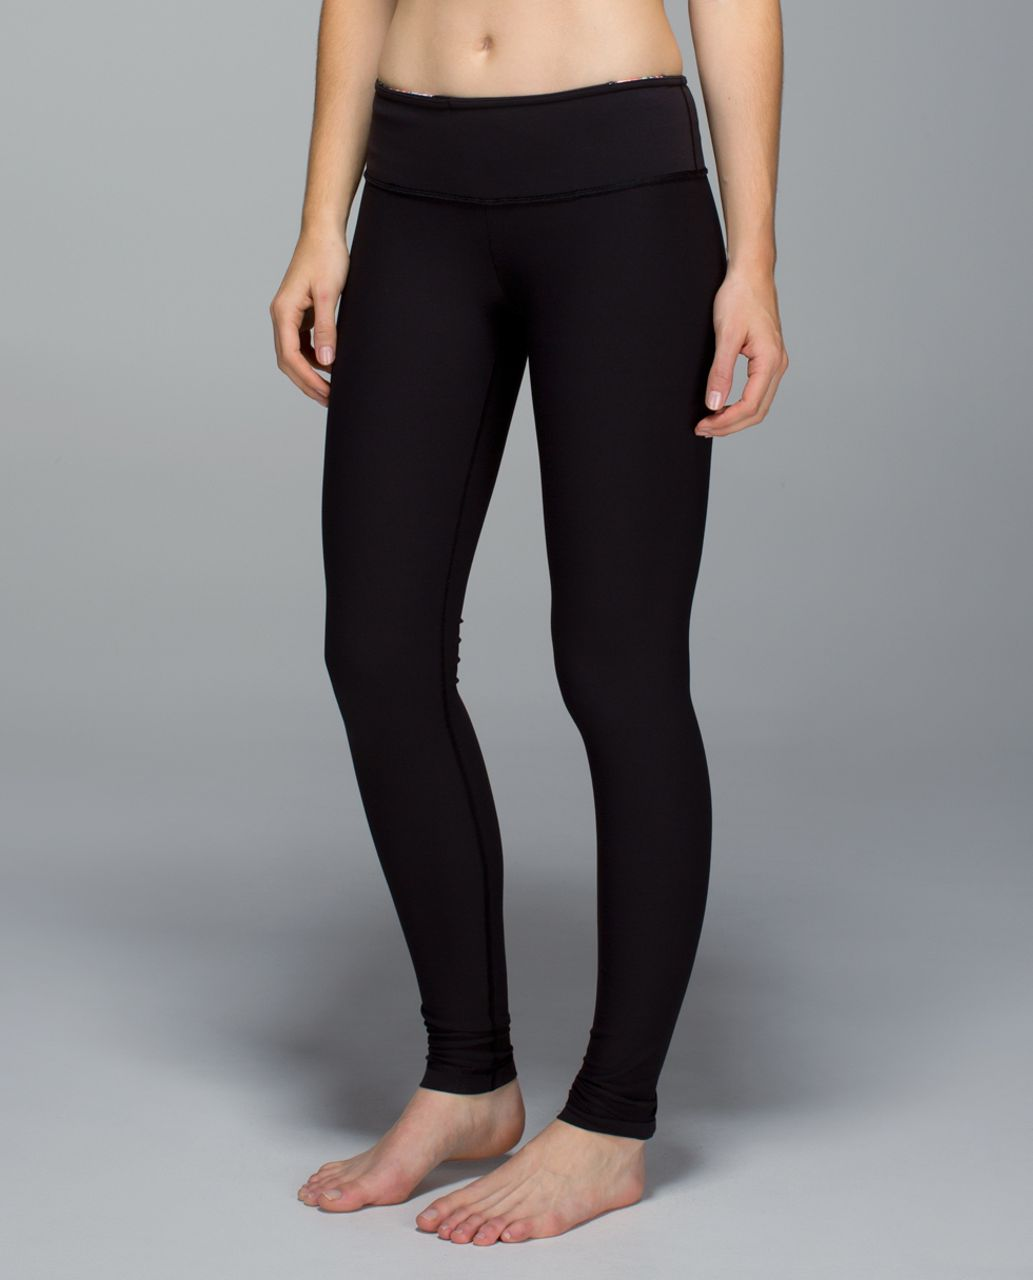 Lululemon Wunder Under Pant *Full-On Luon - Black / Wi14 Quilt 4